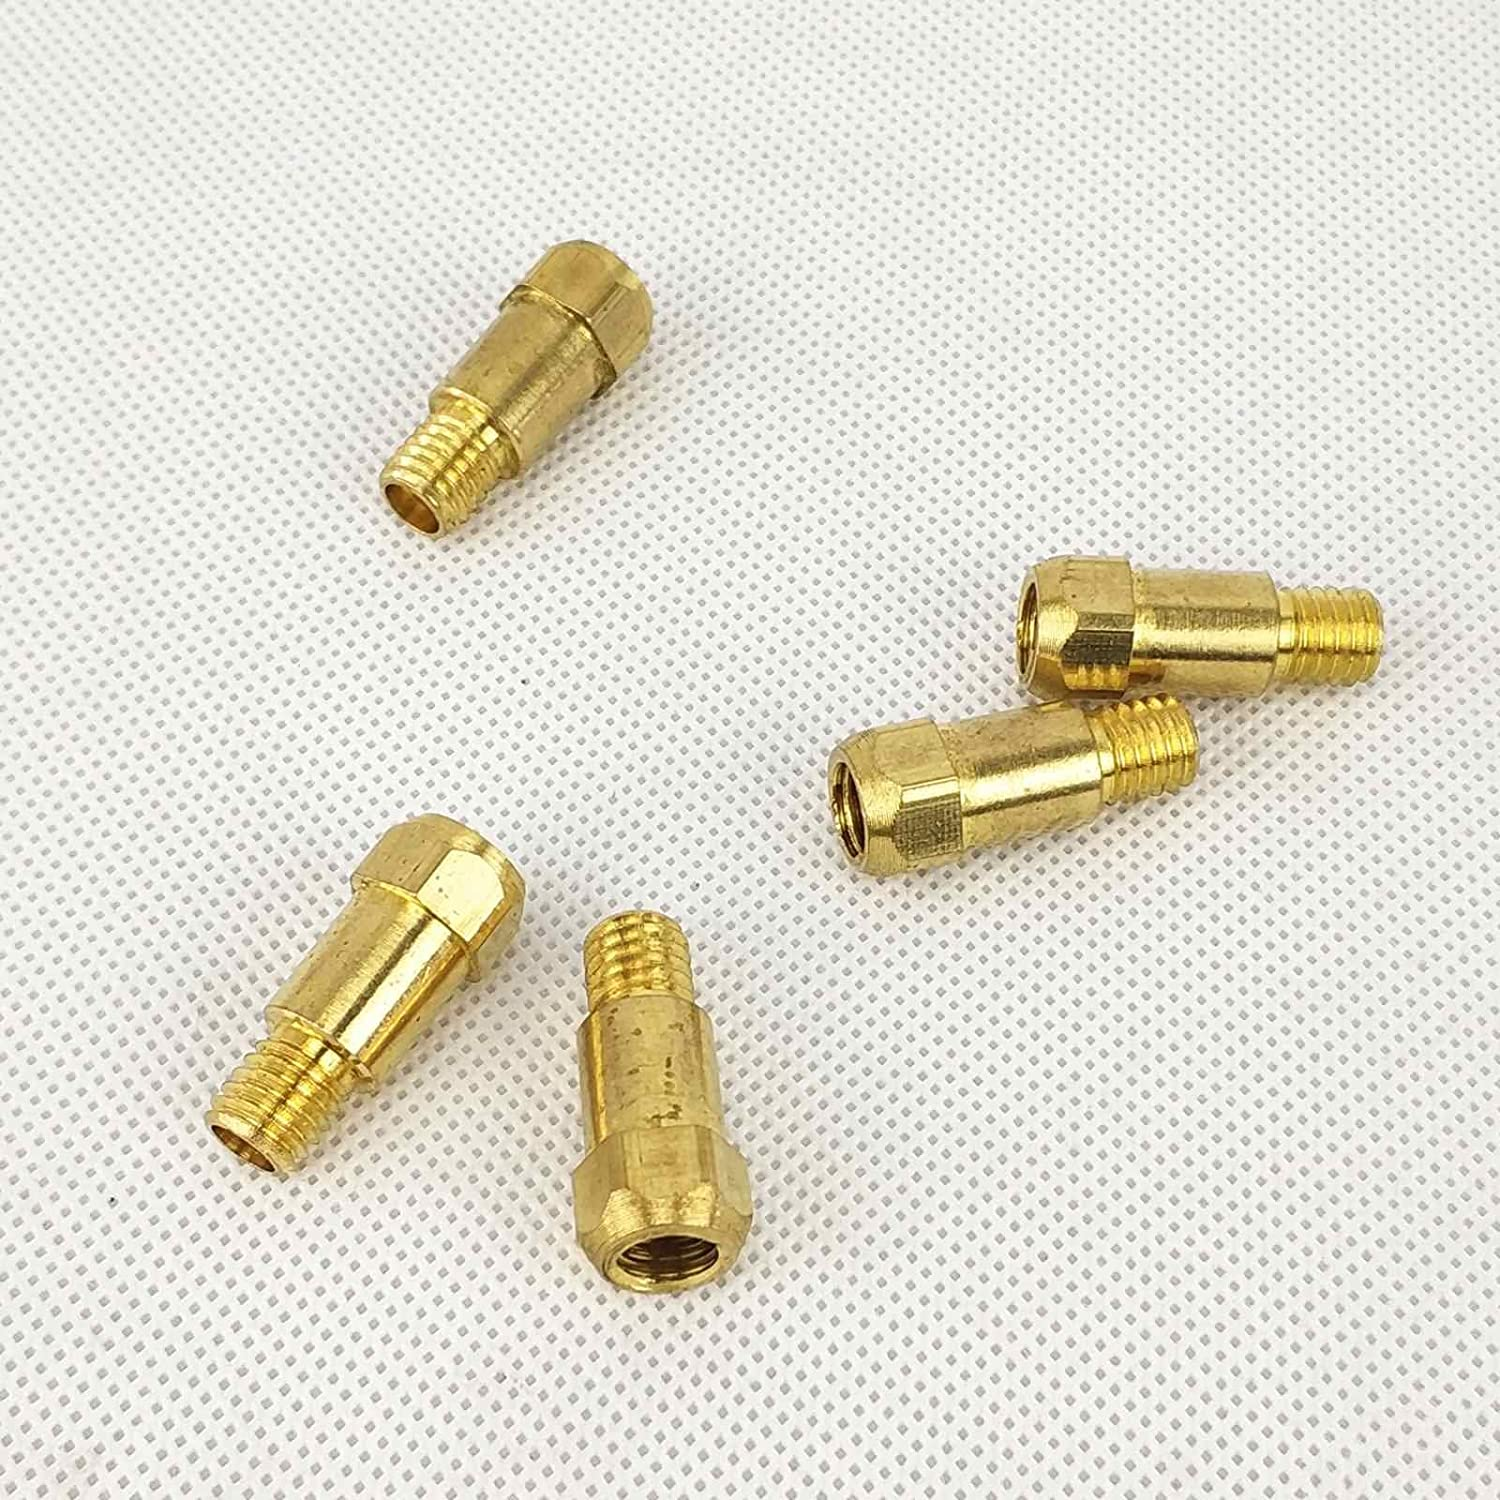 15AK 24KD 36KD Contact Tips Nozzles Holders Swan Neck MIG Torch//Gun Consumables for Euro Style MIG MAG Welding Torches 36KD 0.8 Tip 10pcs ECU